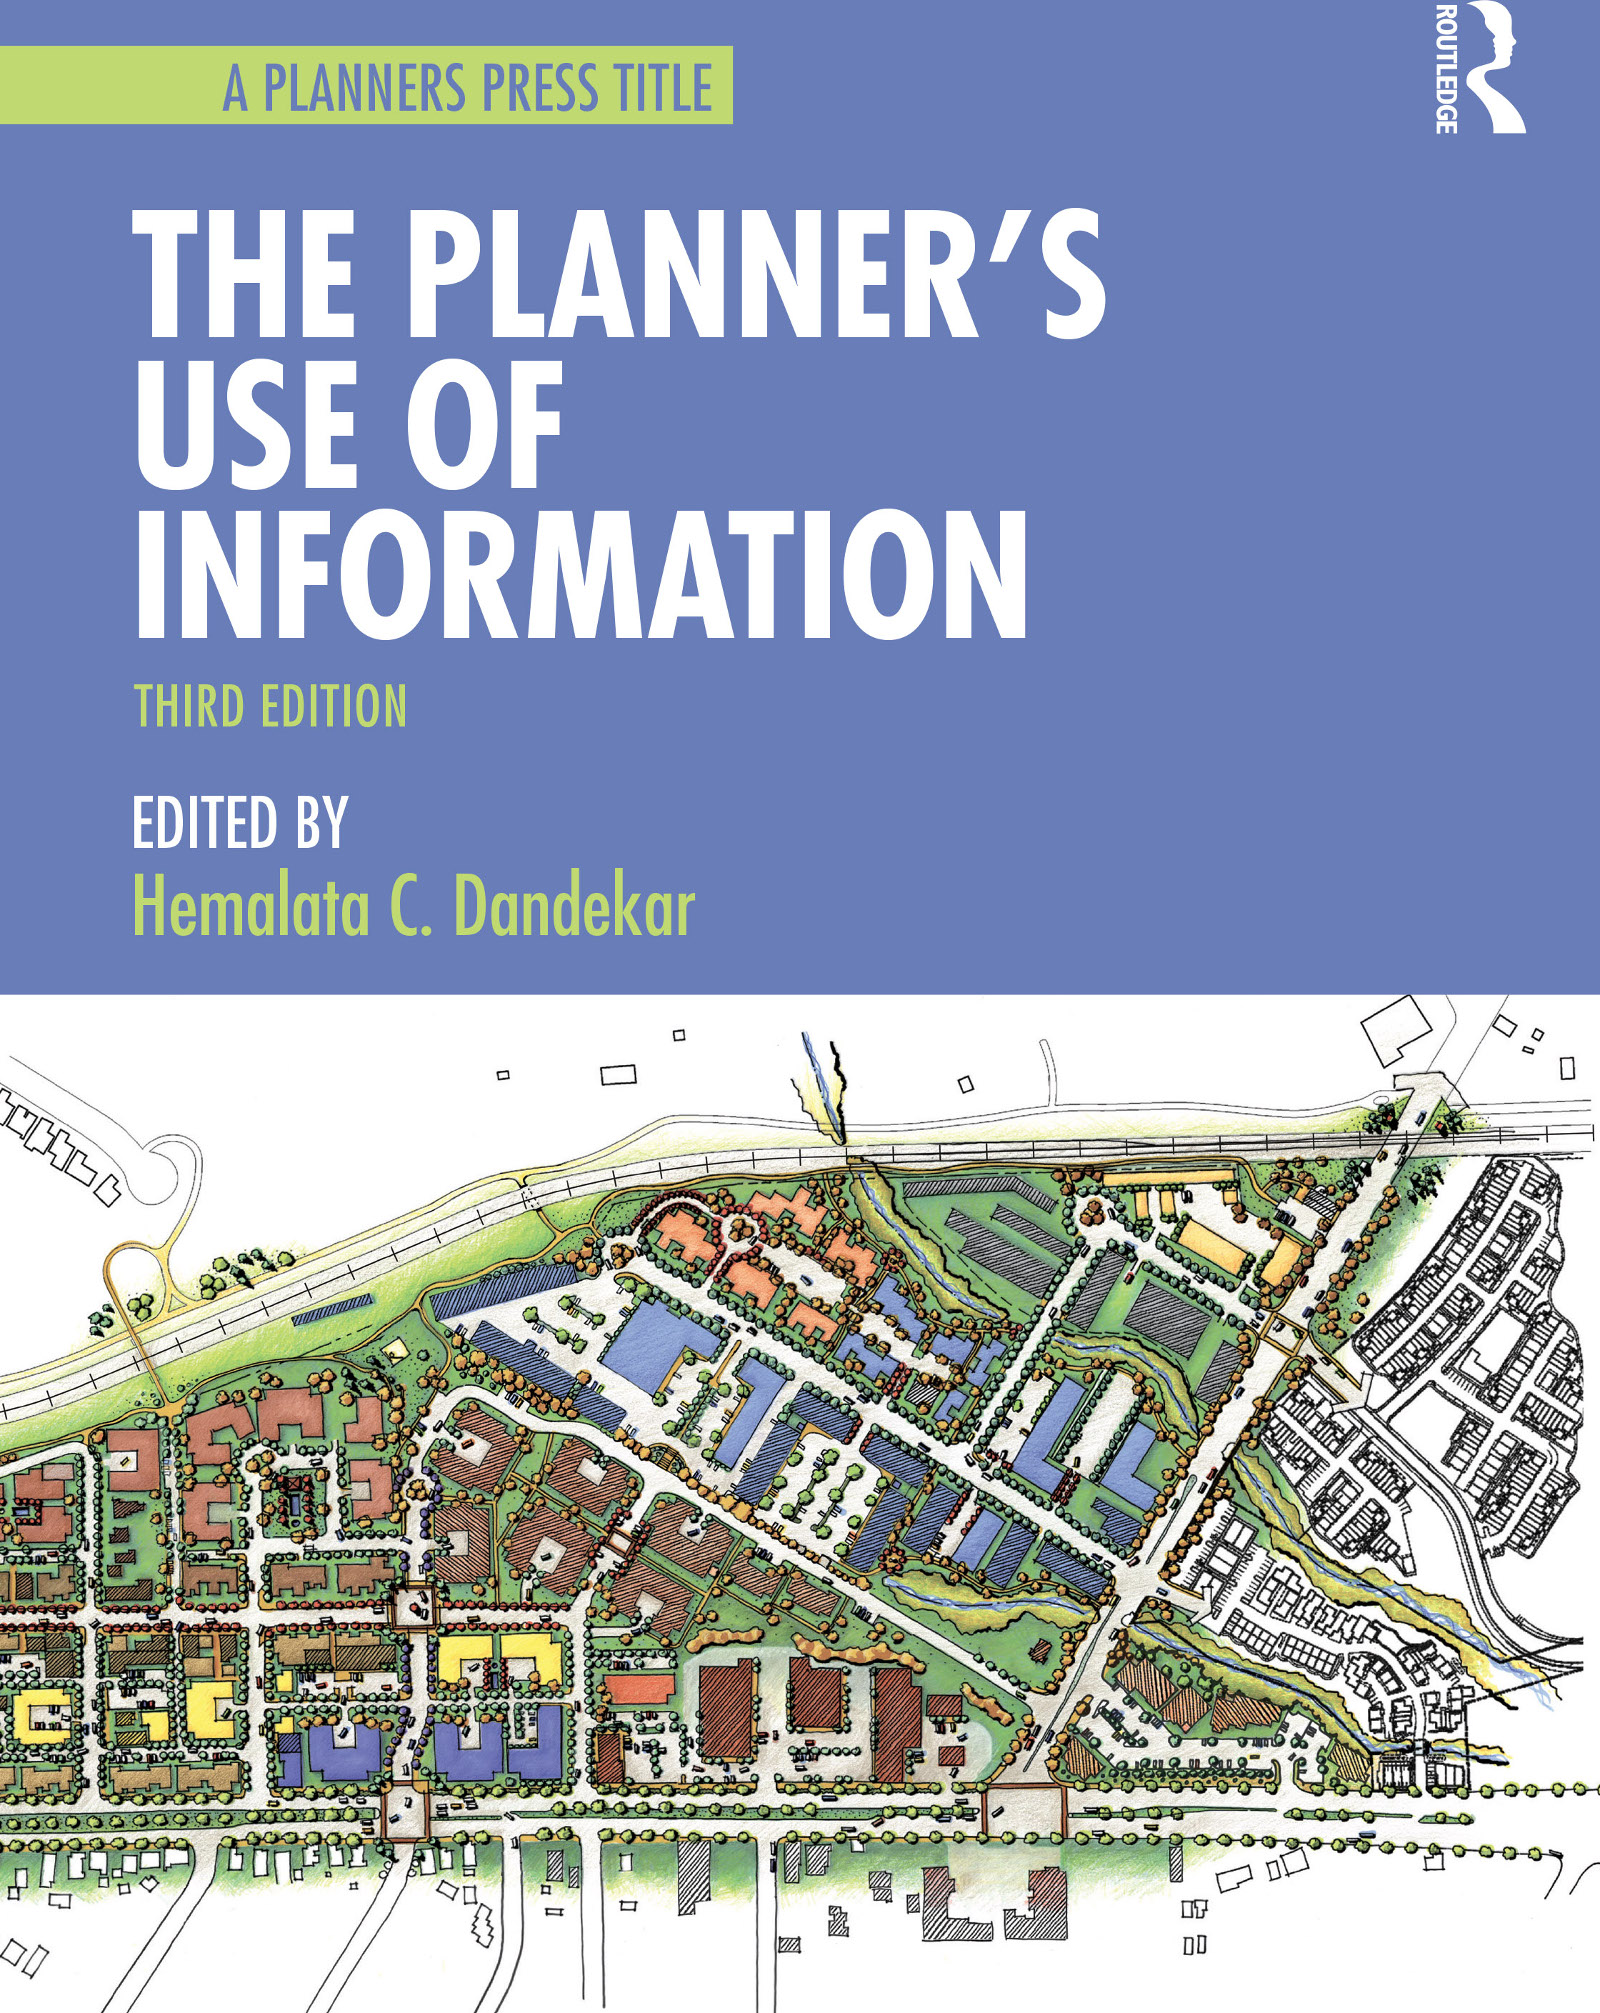 The Planner's Use of Information book cover